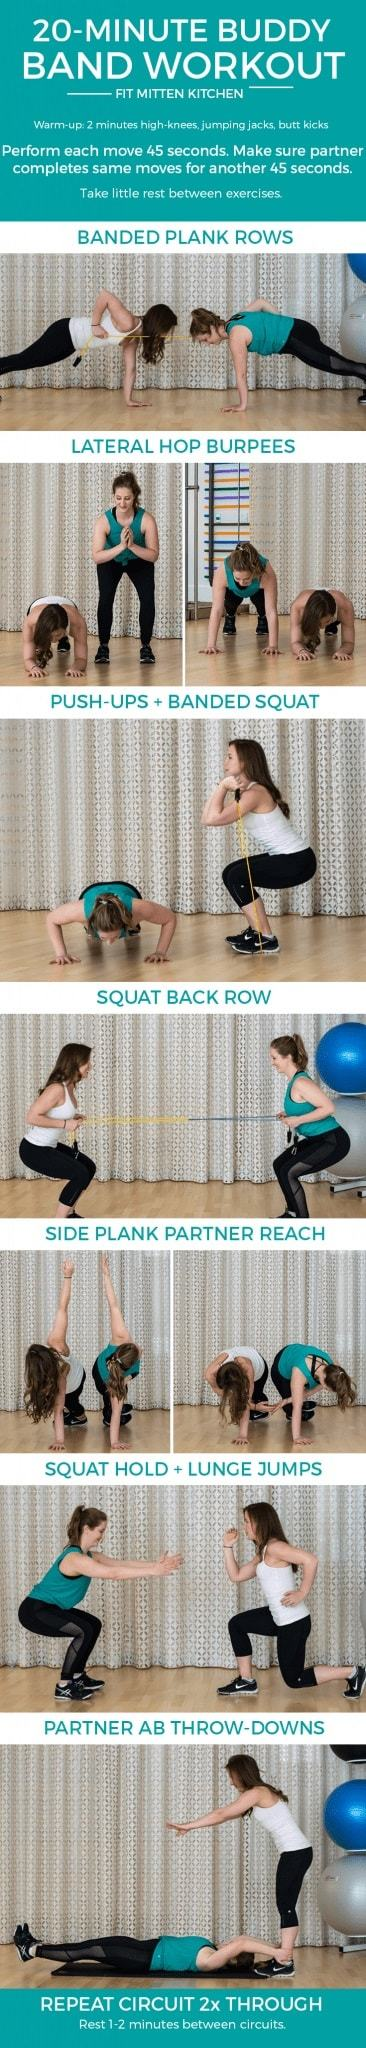 Click here to find out the health benefits of buddy band workout and other fat burning exercises. Discover a 4 week workout plan for weight loss that works. #keepingfit #workouts #fitnessgoals #healthyliving #healthy #exercise #longevity #healthier